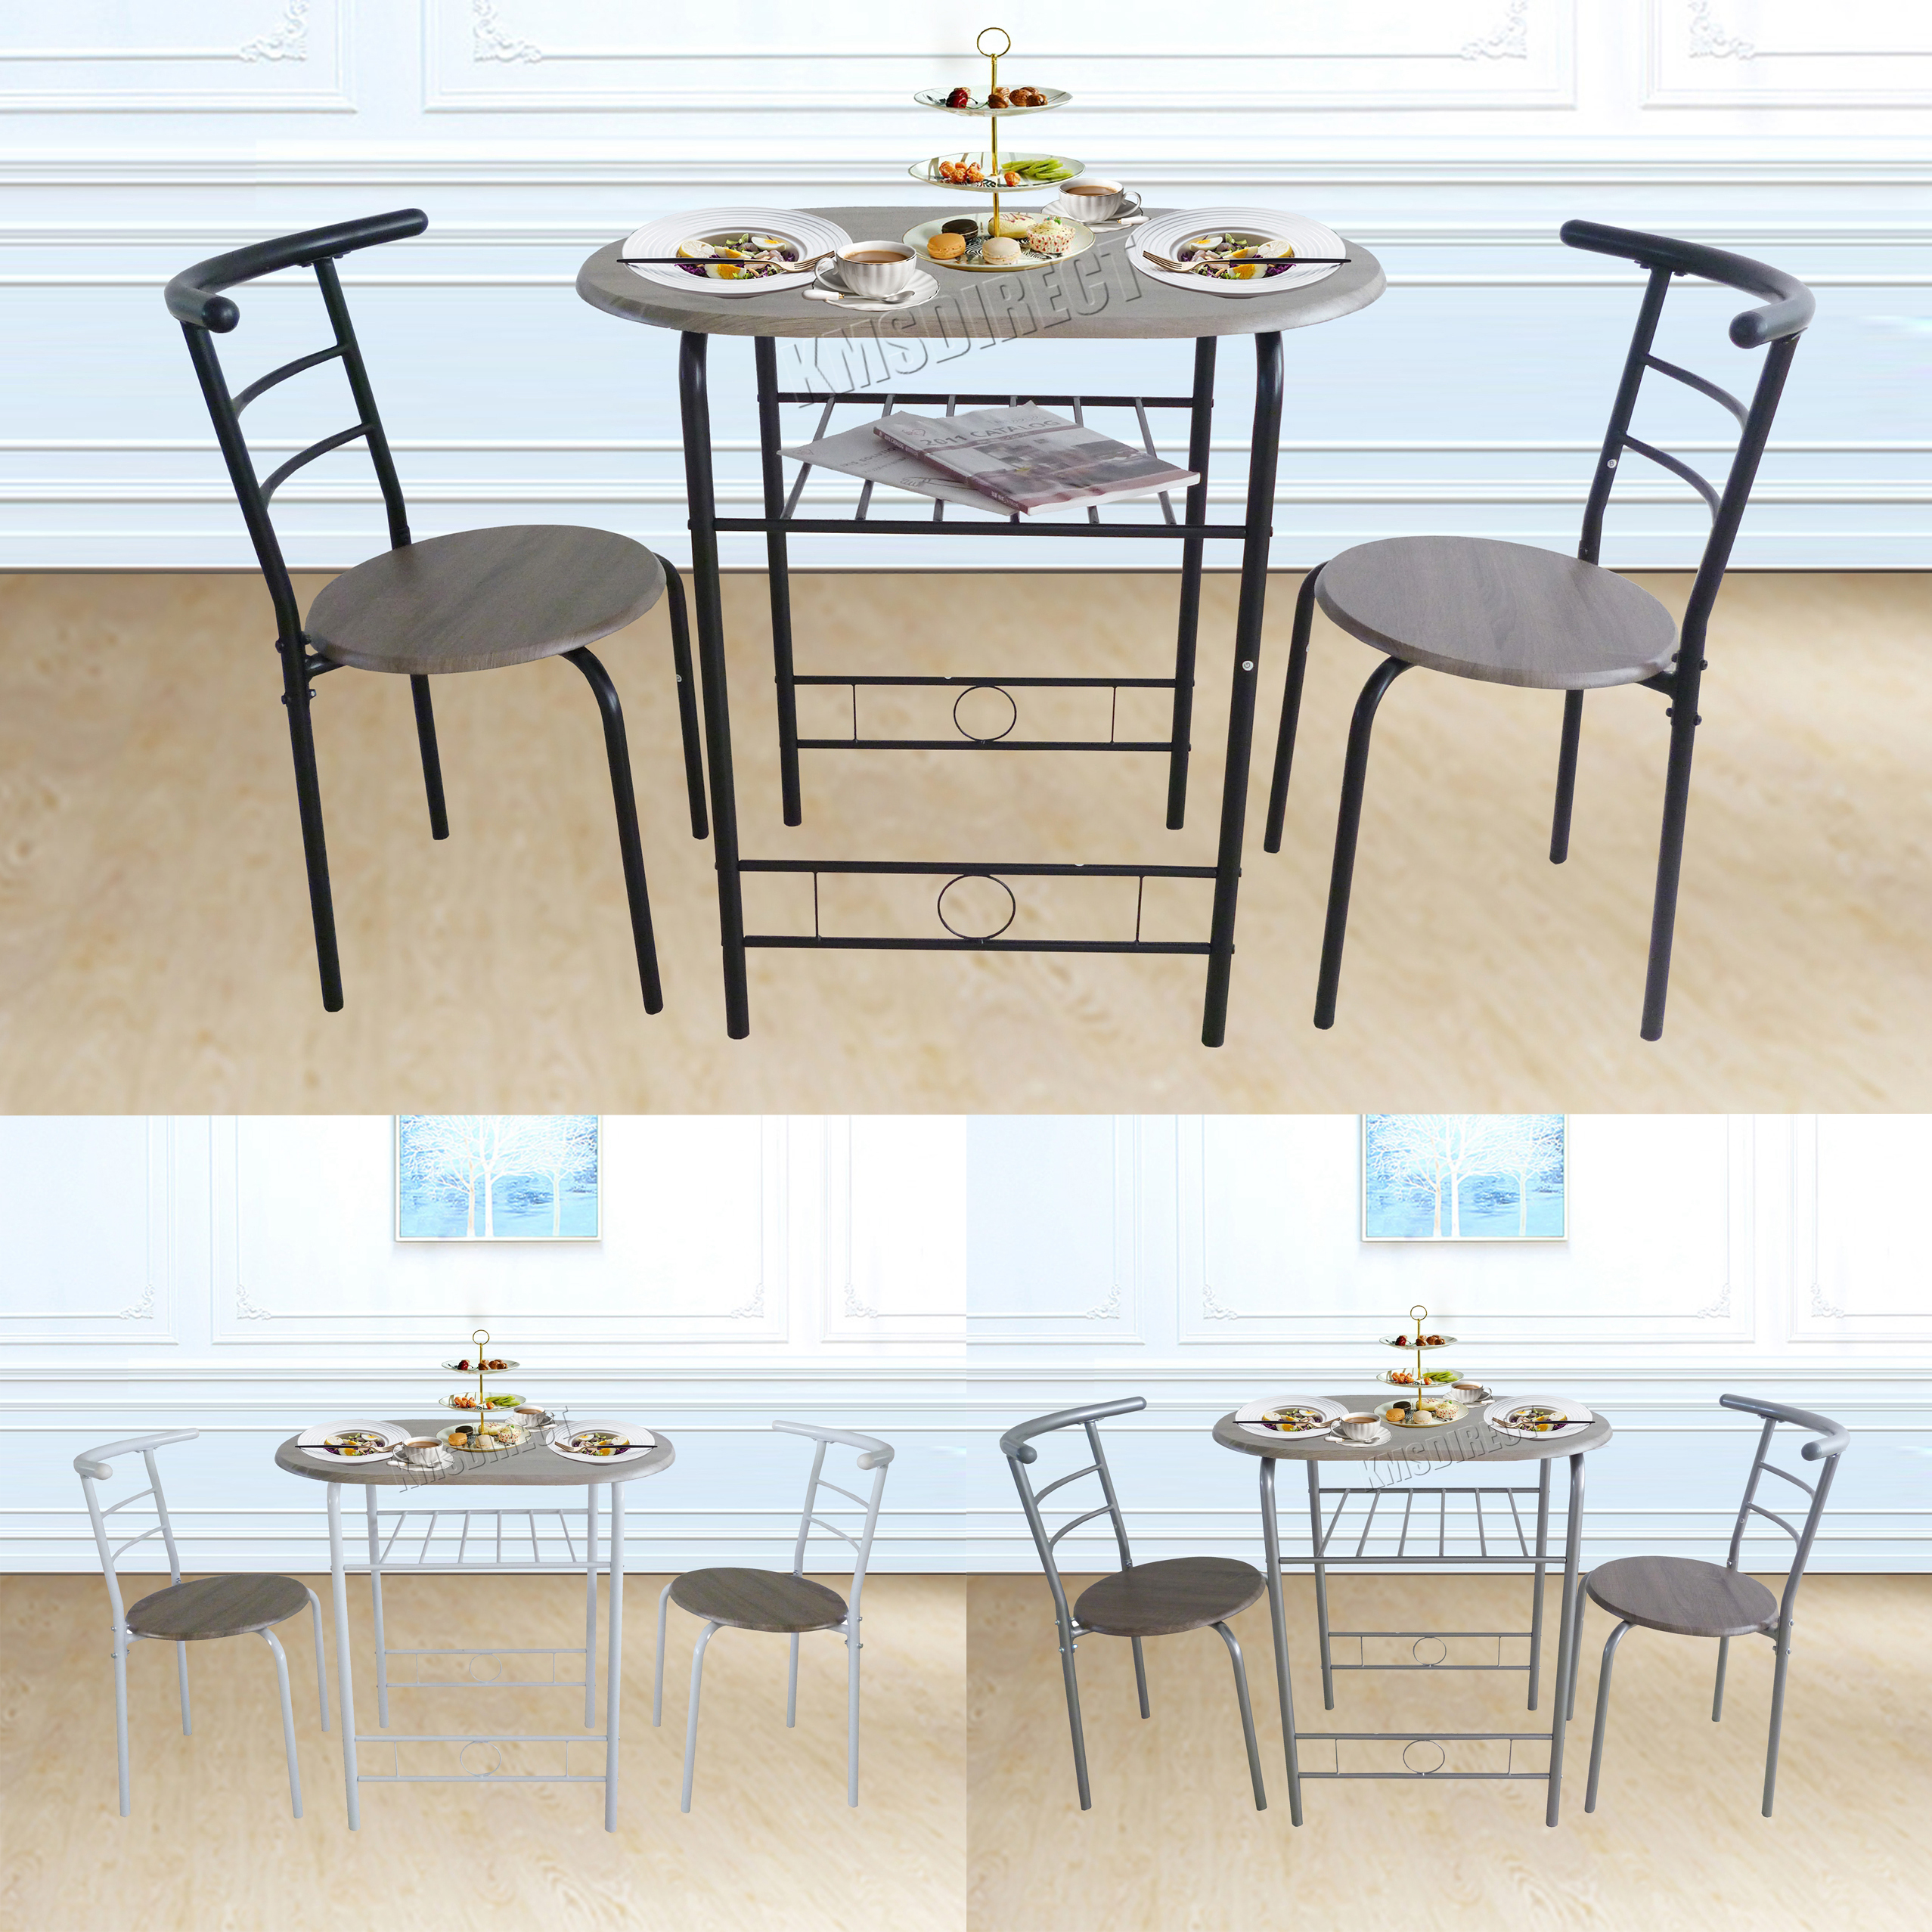 foxhunter compact dining table breakfast bar 2 chair set metal mdf kitchen ds06. Black Bedroom Furniture Sets. Home Design Ideas